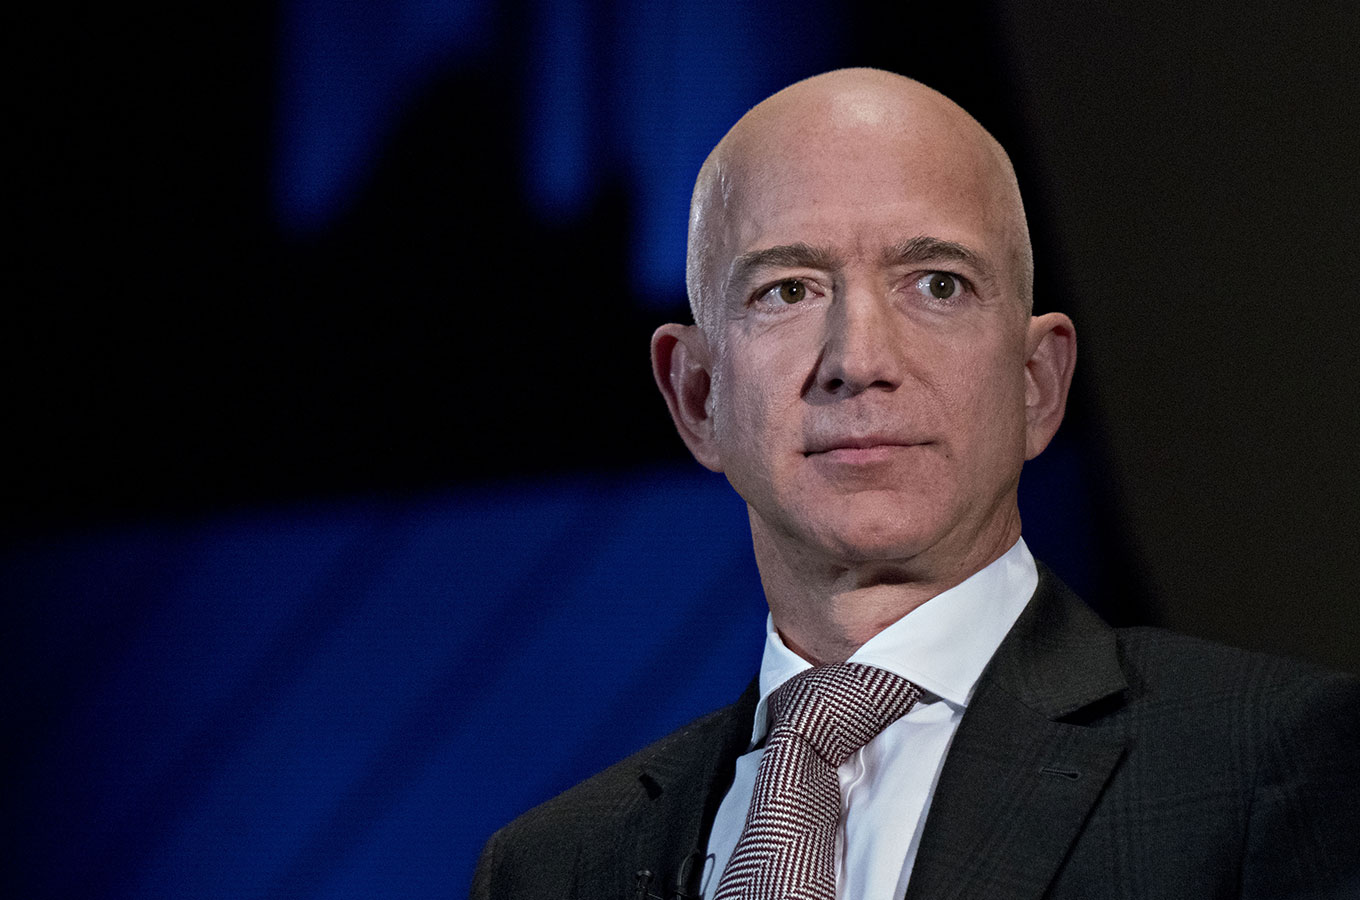 State of Amazon head Jeff Bezos has reached $ 200 billion